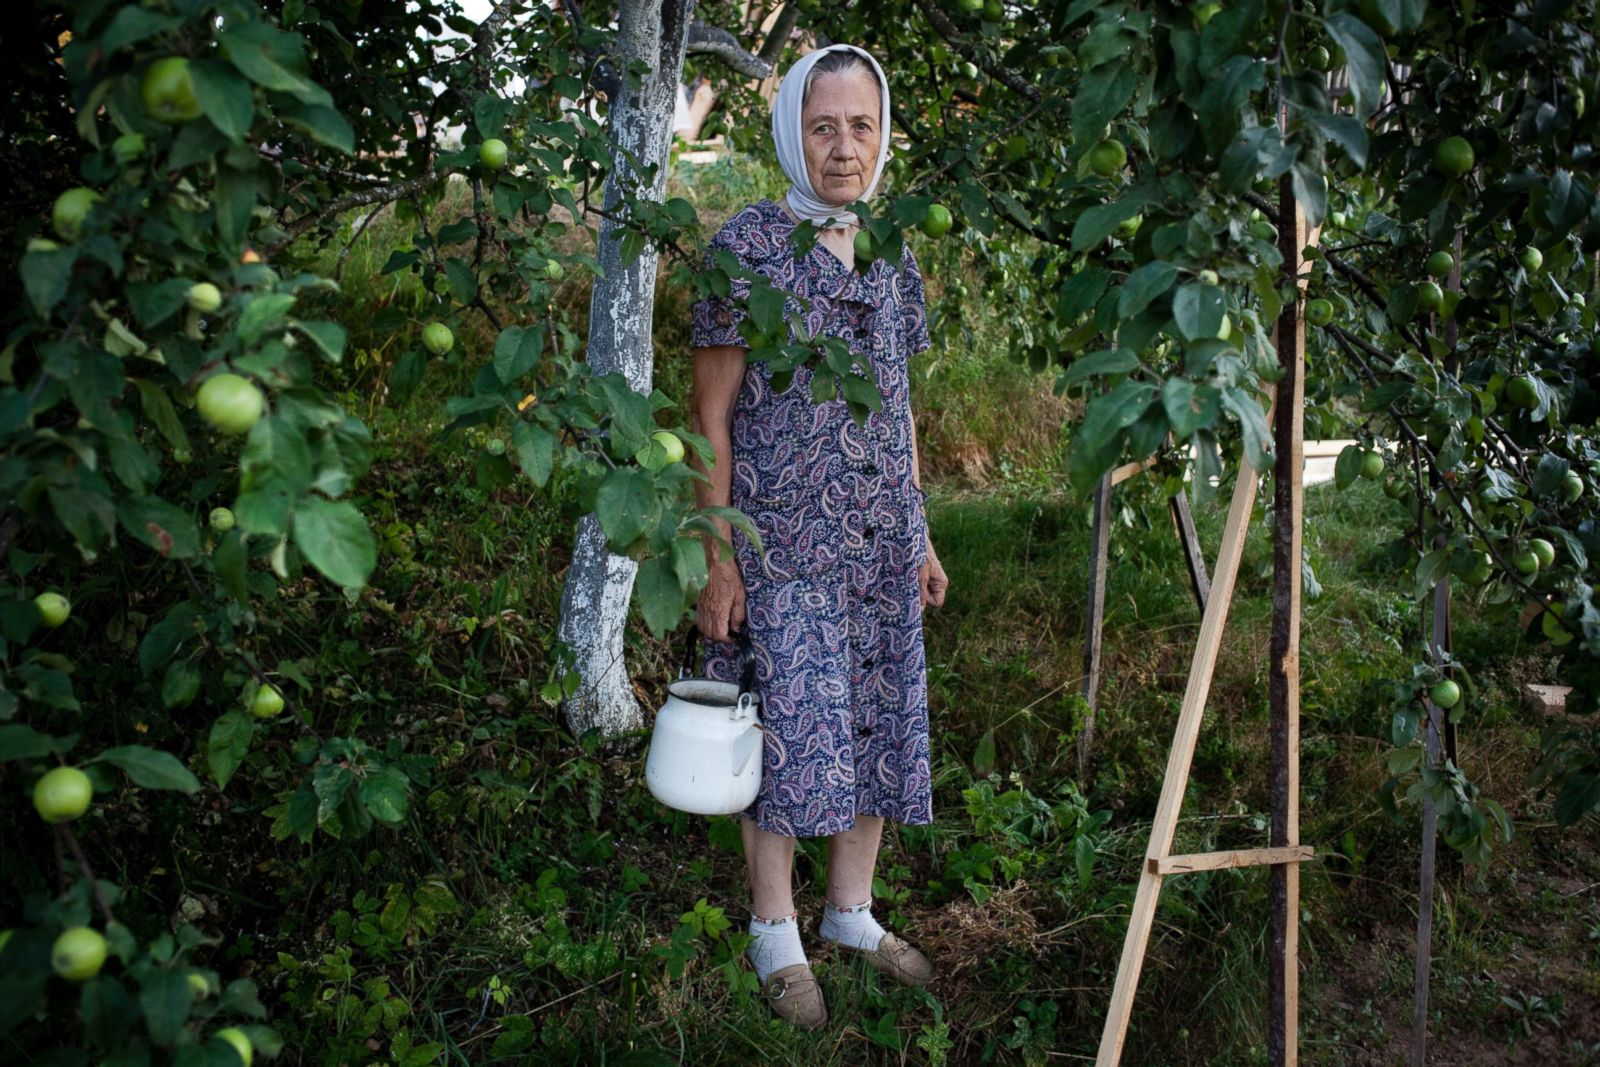 Sisterly Love and Tradition in a Remote Russian Village Photos - ABC